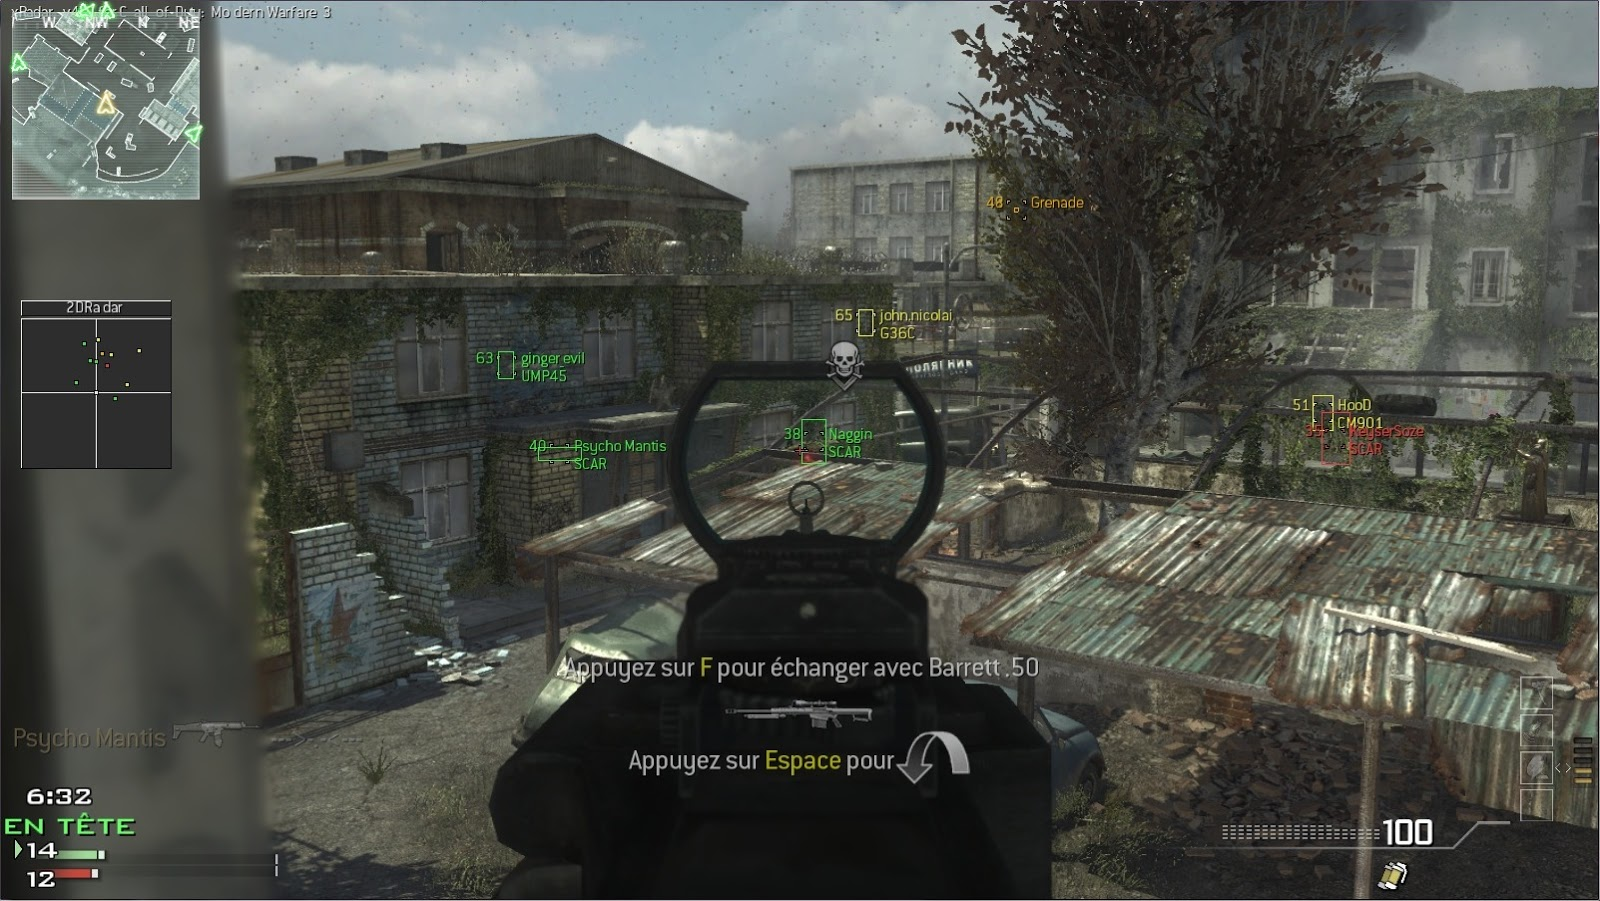 call of duty mw3 hack tool